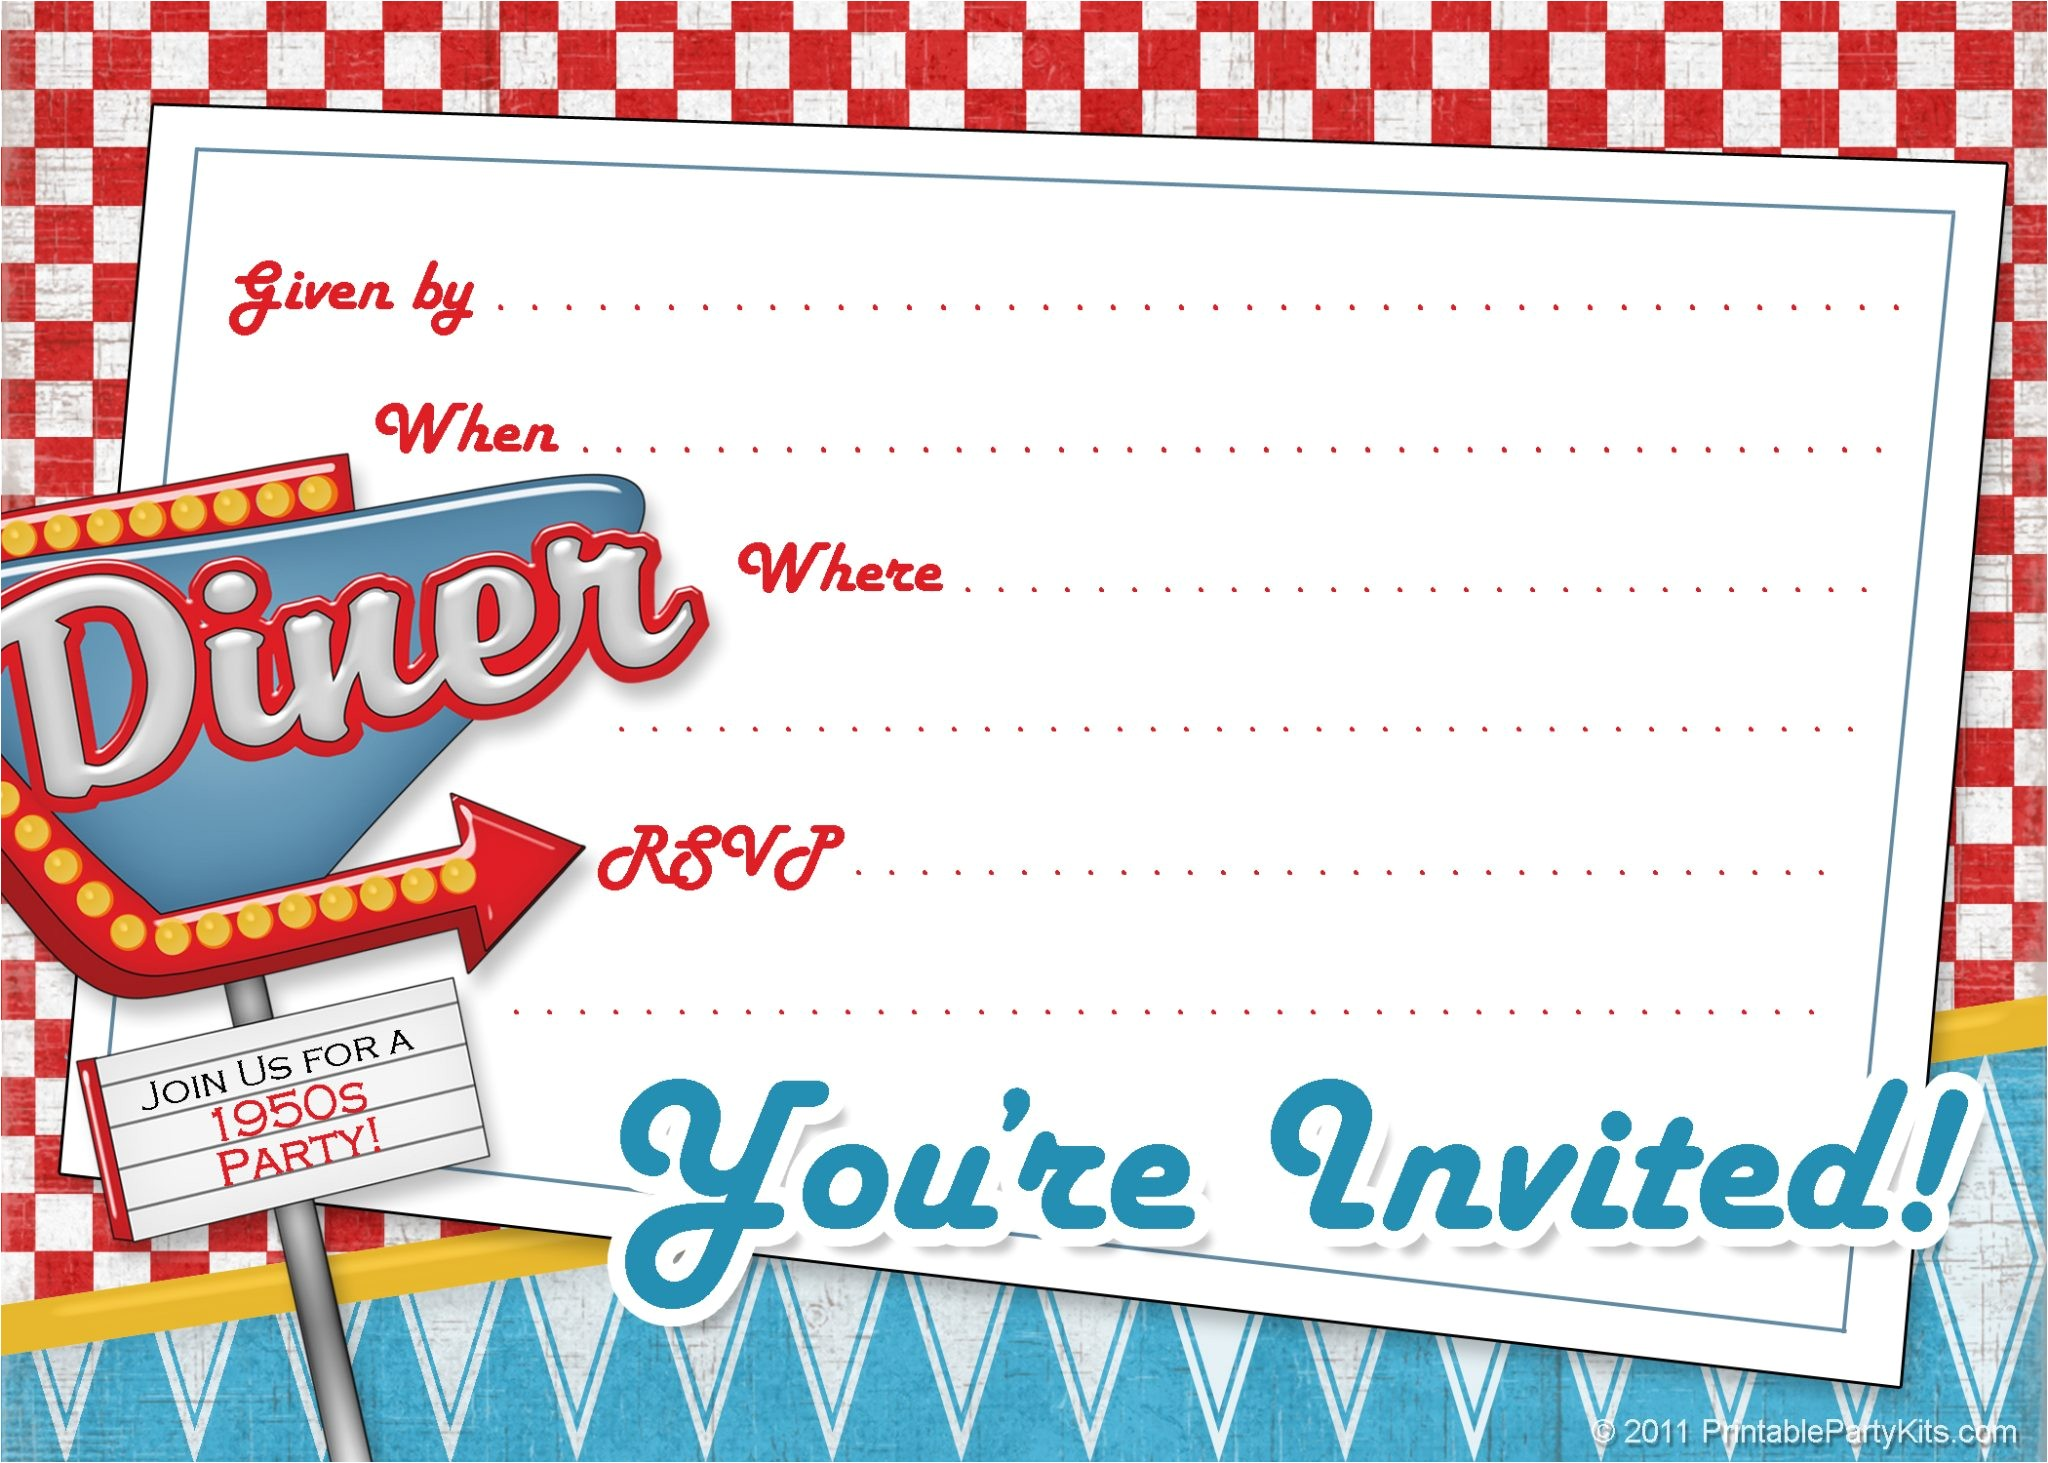 1950s retro invitations